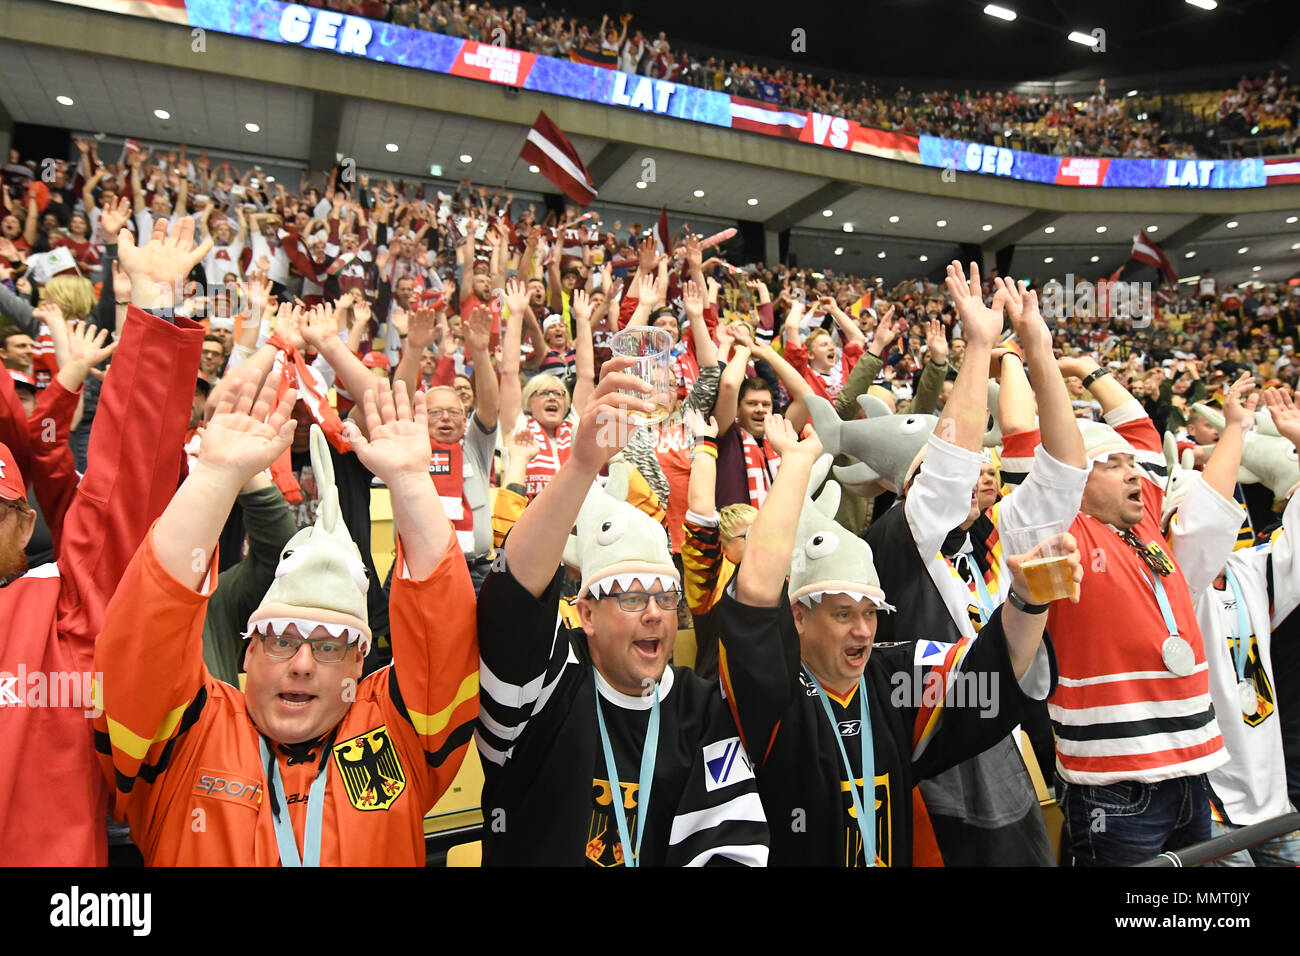 Herning, Denmark.. 12th May, 2018. Fans cheer during the match between Latvia and Germany on 12.05.2018 in Herning, Denmark. (Photo by Marco Leipold/City-Press GbR) | usage worldwide Credit: dpa picture alliance/Alamy Live News Stock Photo